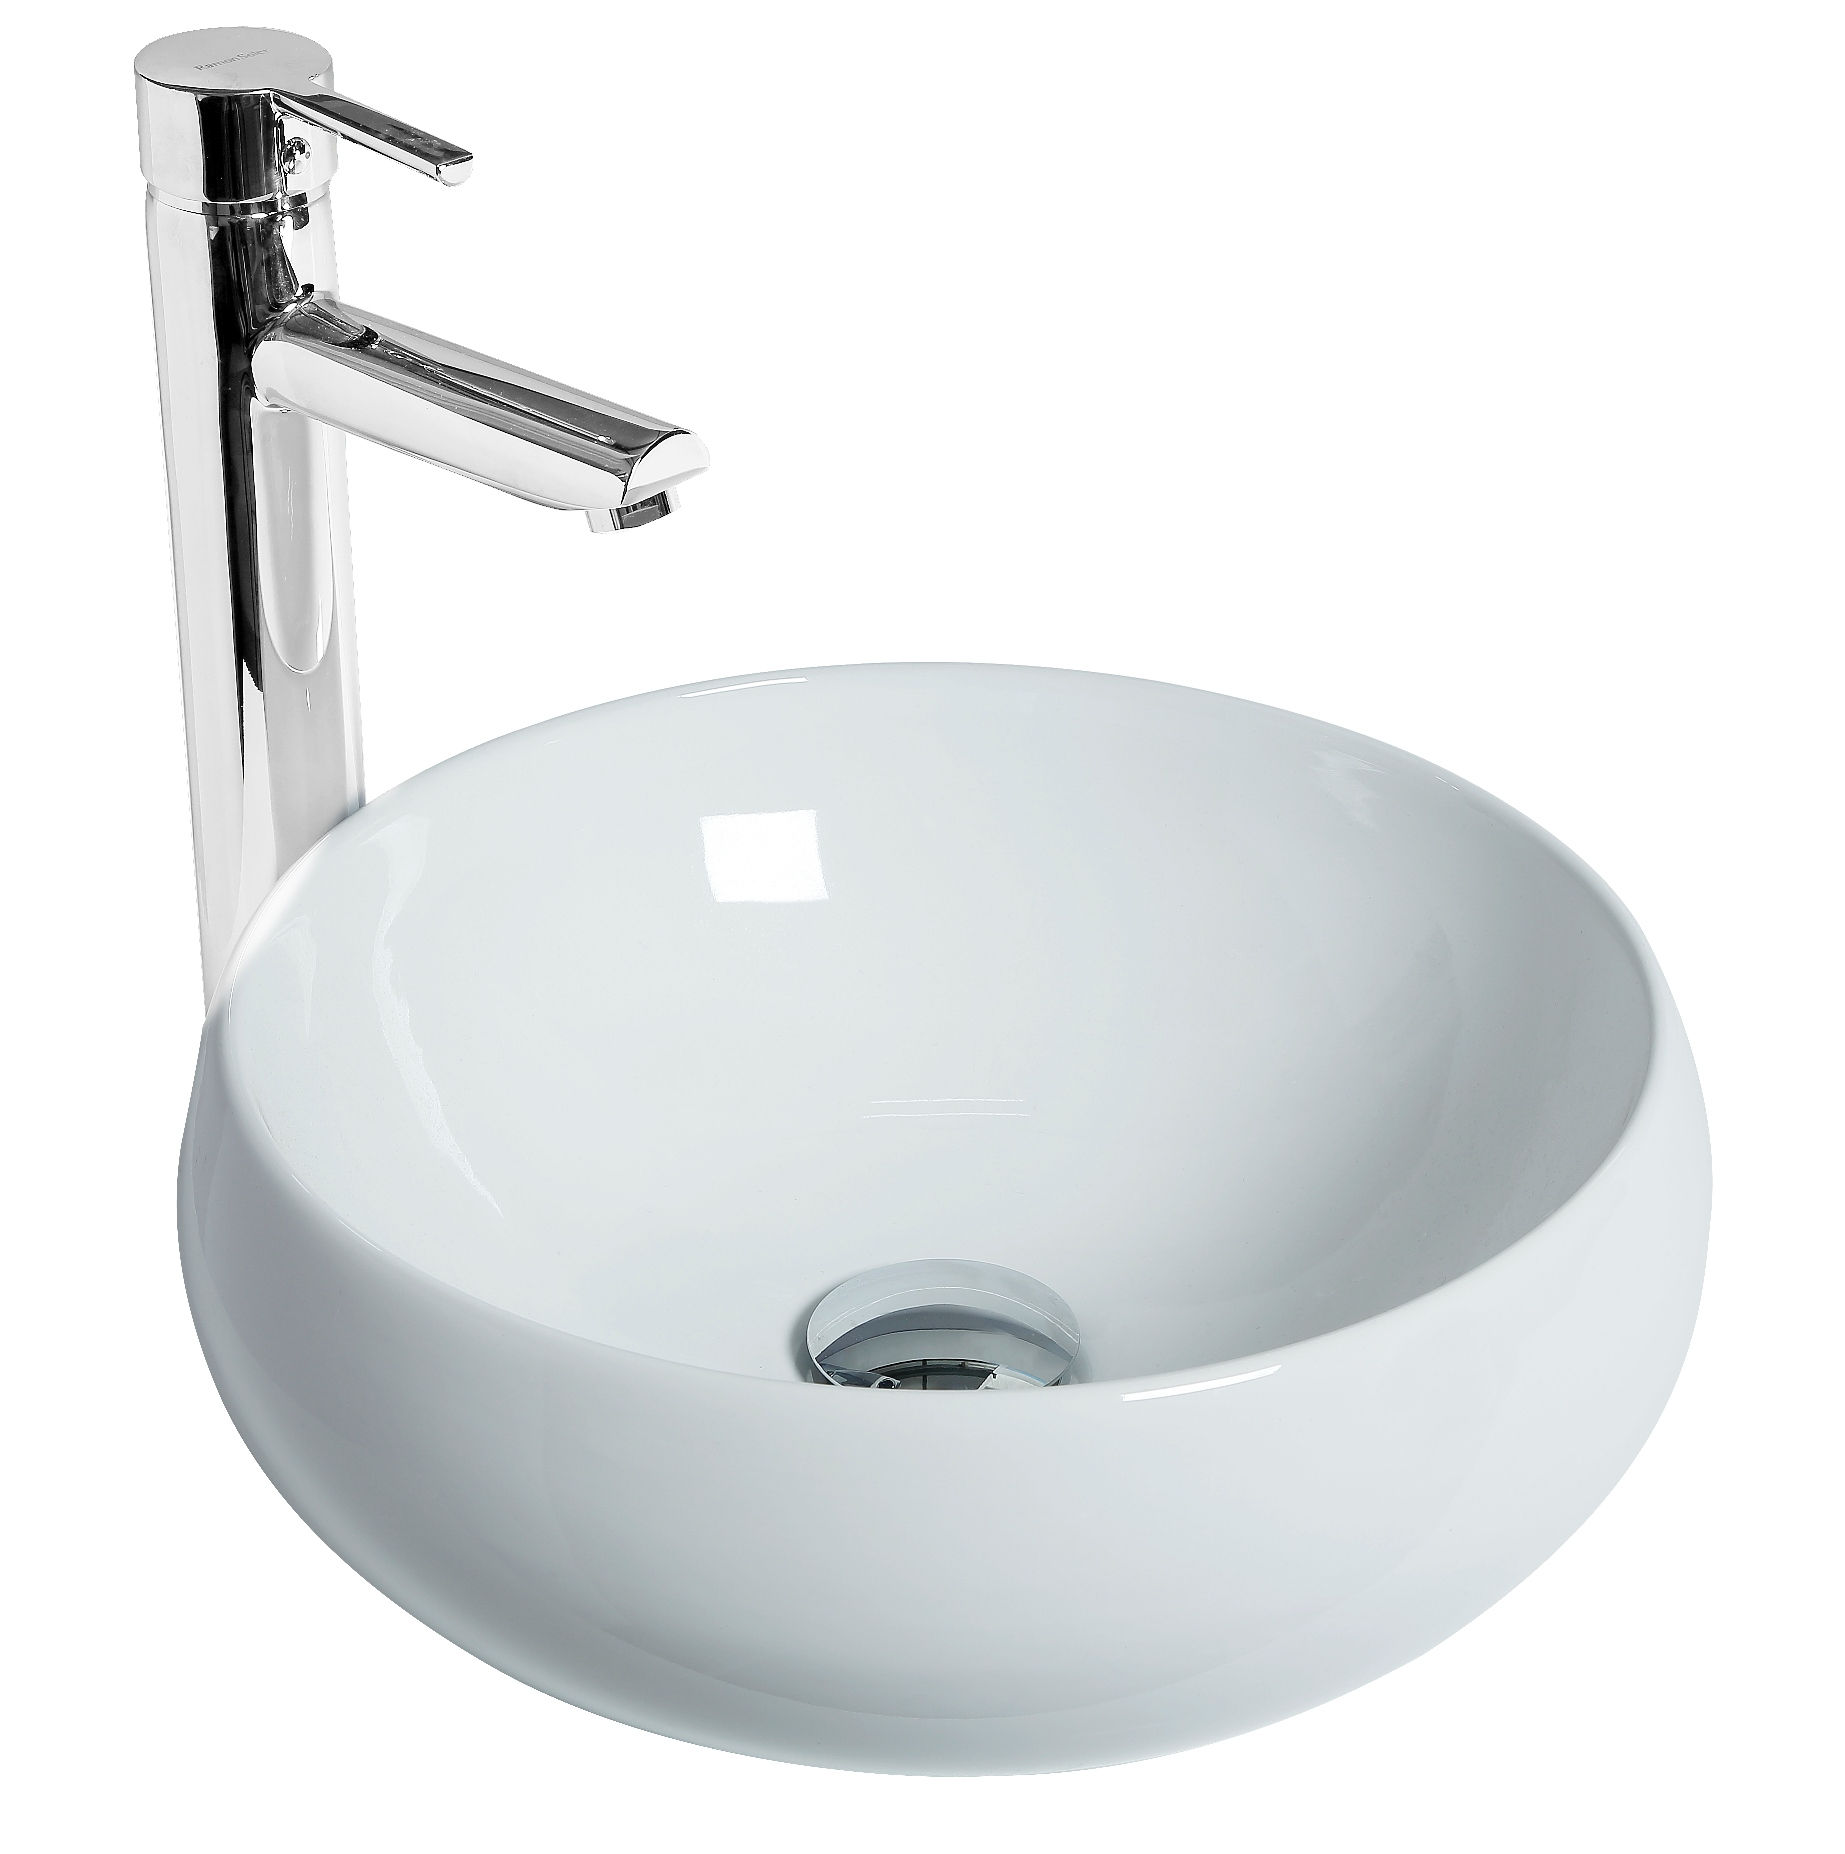 Discac Vasque Poser Ronde Galet Couleur Blanc Distriartisan